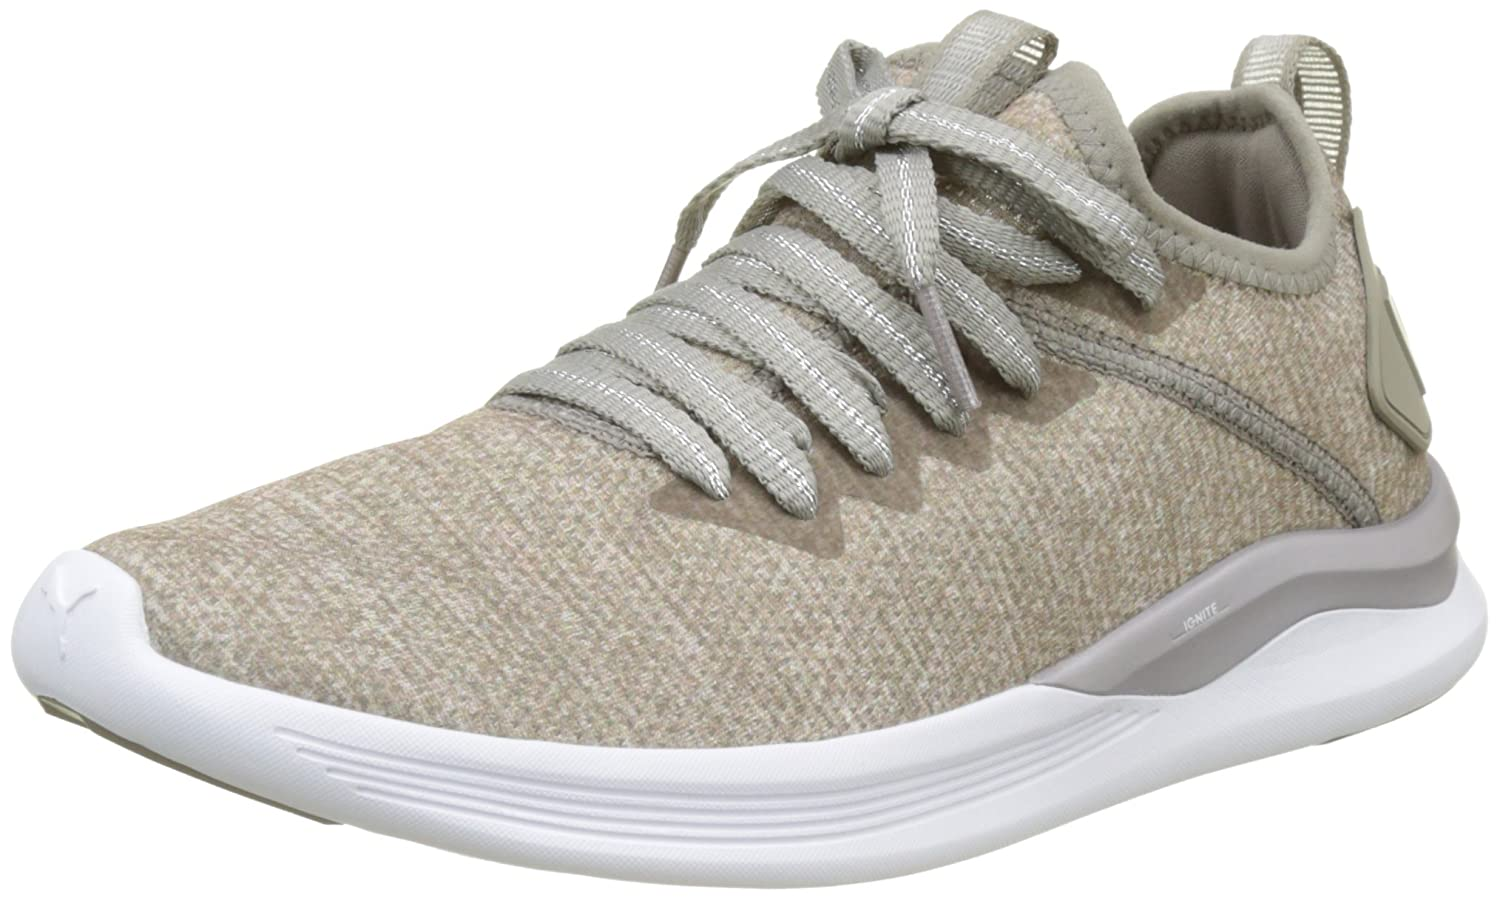 TALLA 38 EU. Puma Ignite Flash Evoknit EP Wn's, Zapatillas de Cross para Mujer